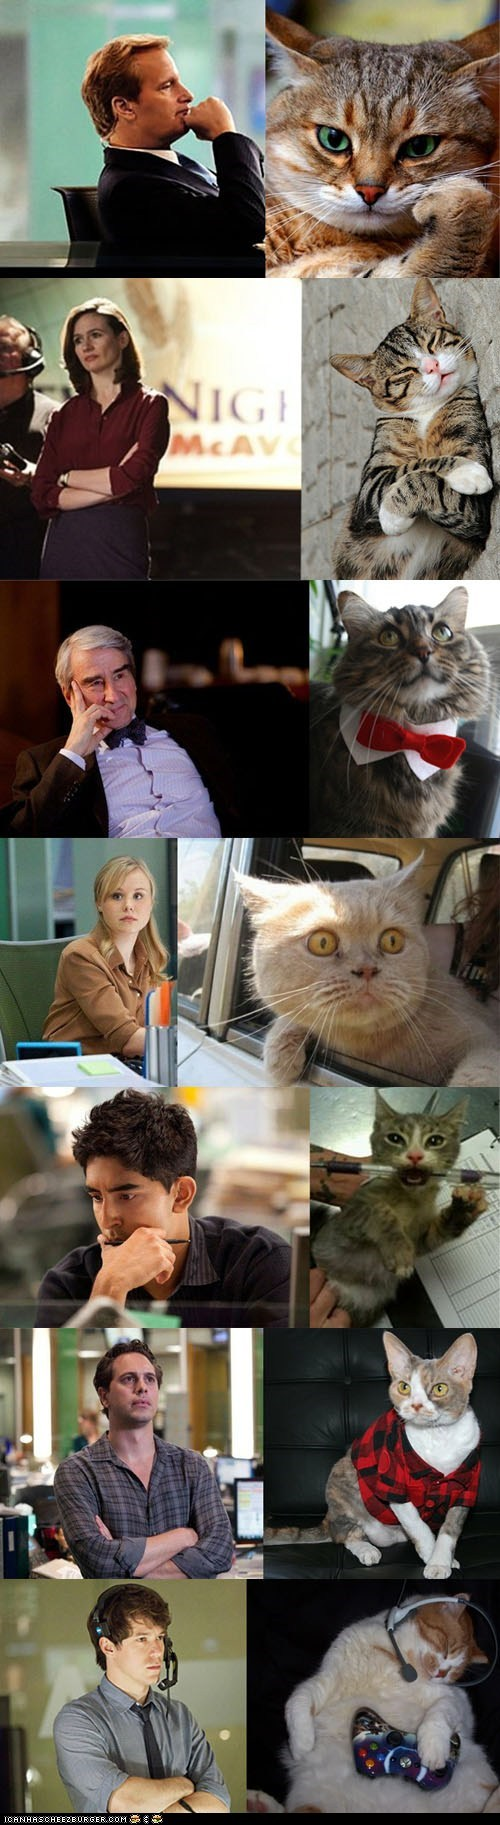 aaron sorkin,Cats,hbo,look alikes,newsroom,the newsroom,TV